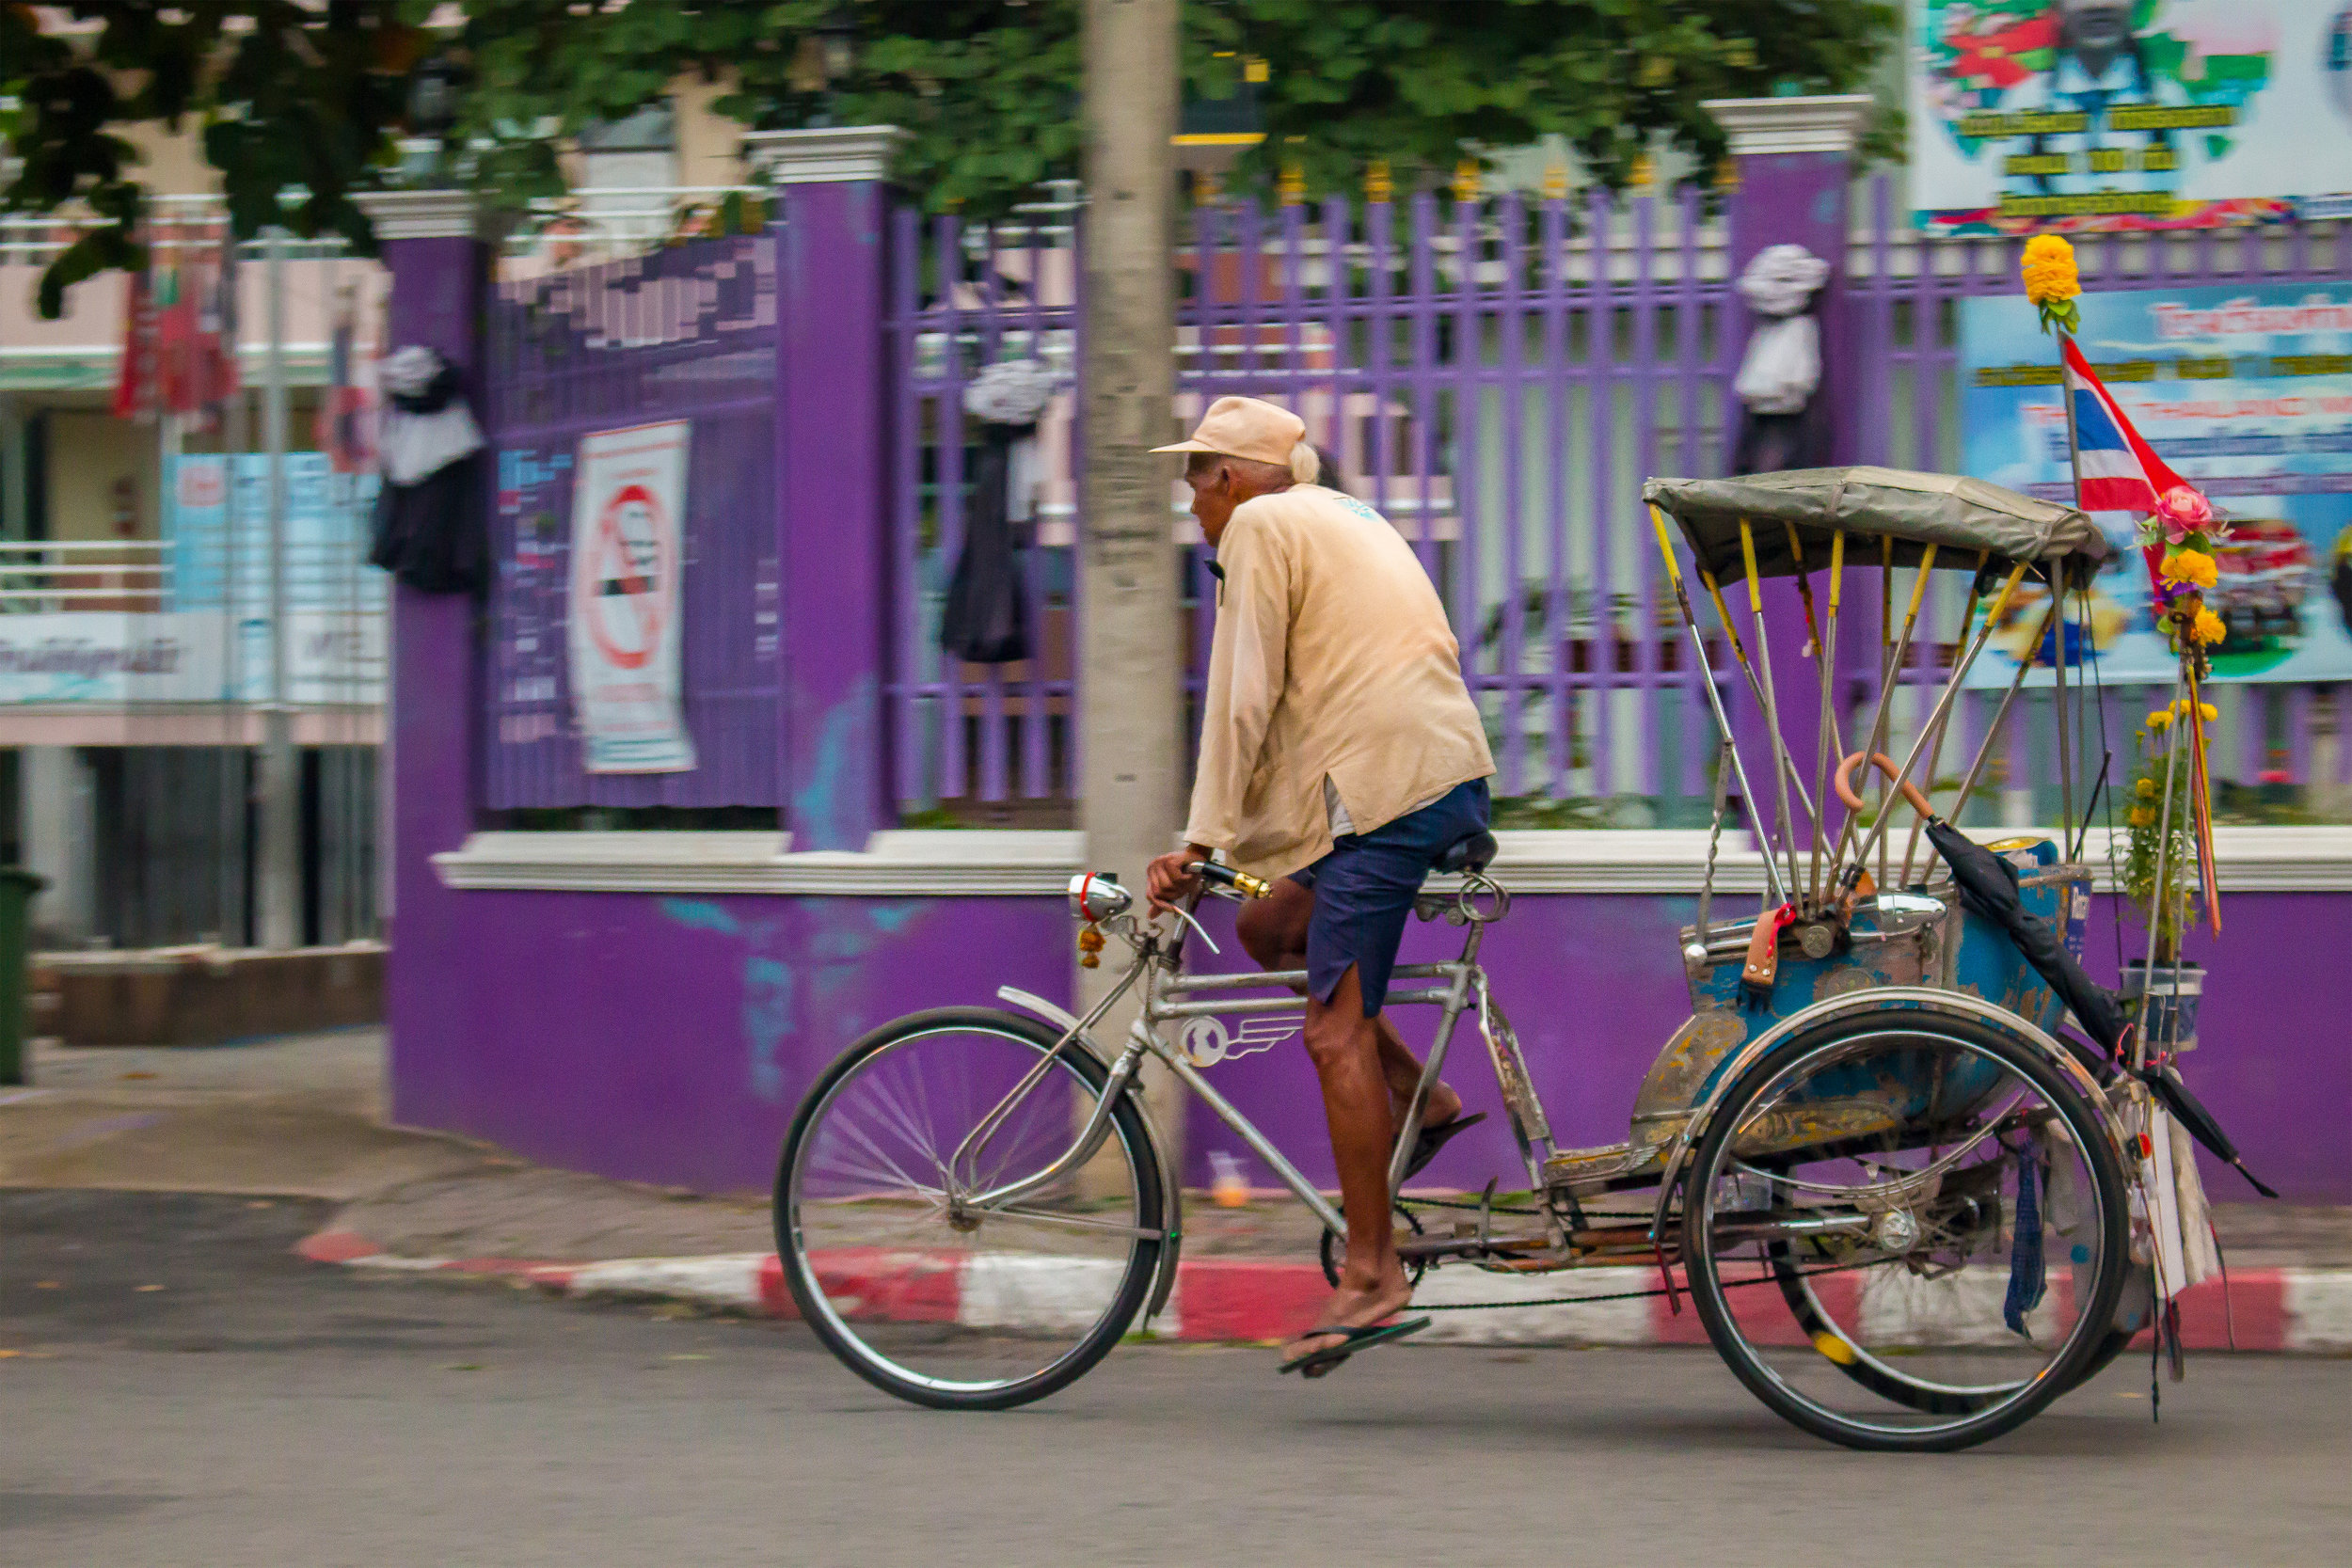 Bicyclist riding through the streets of Chiang Mai, Thailand